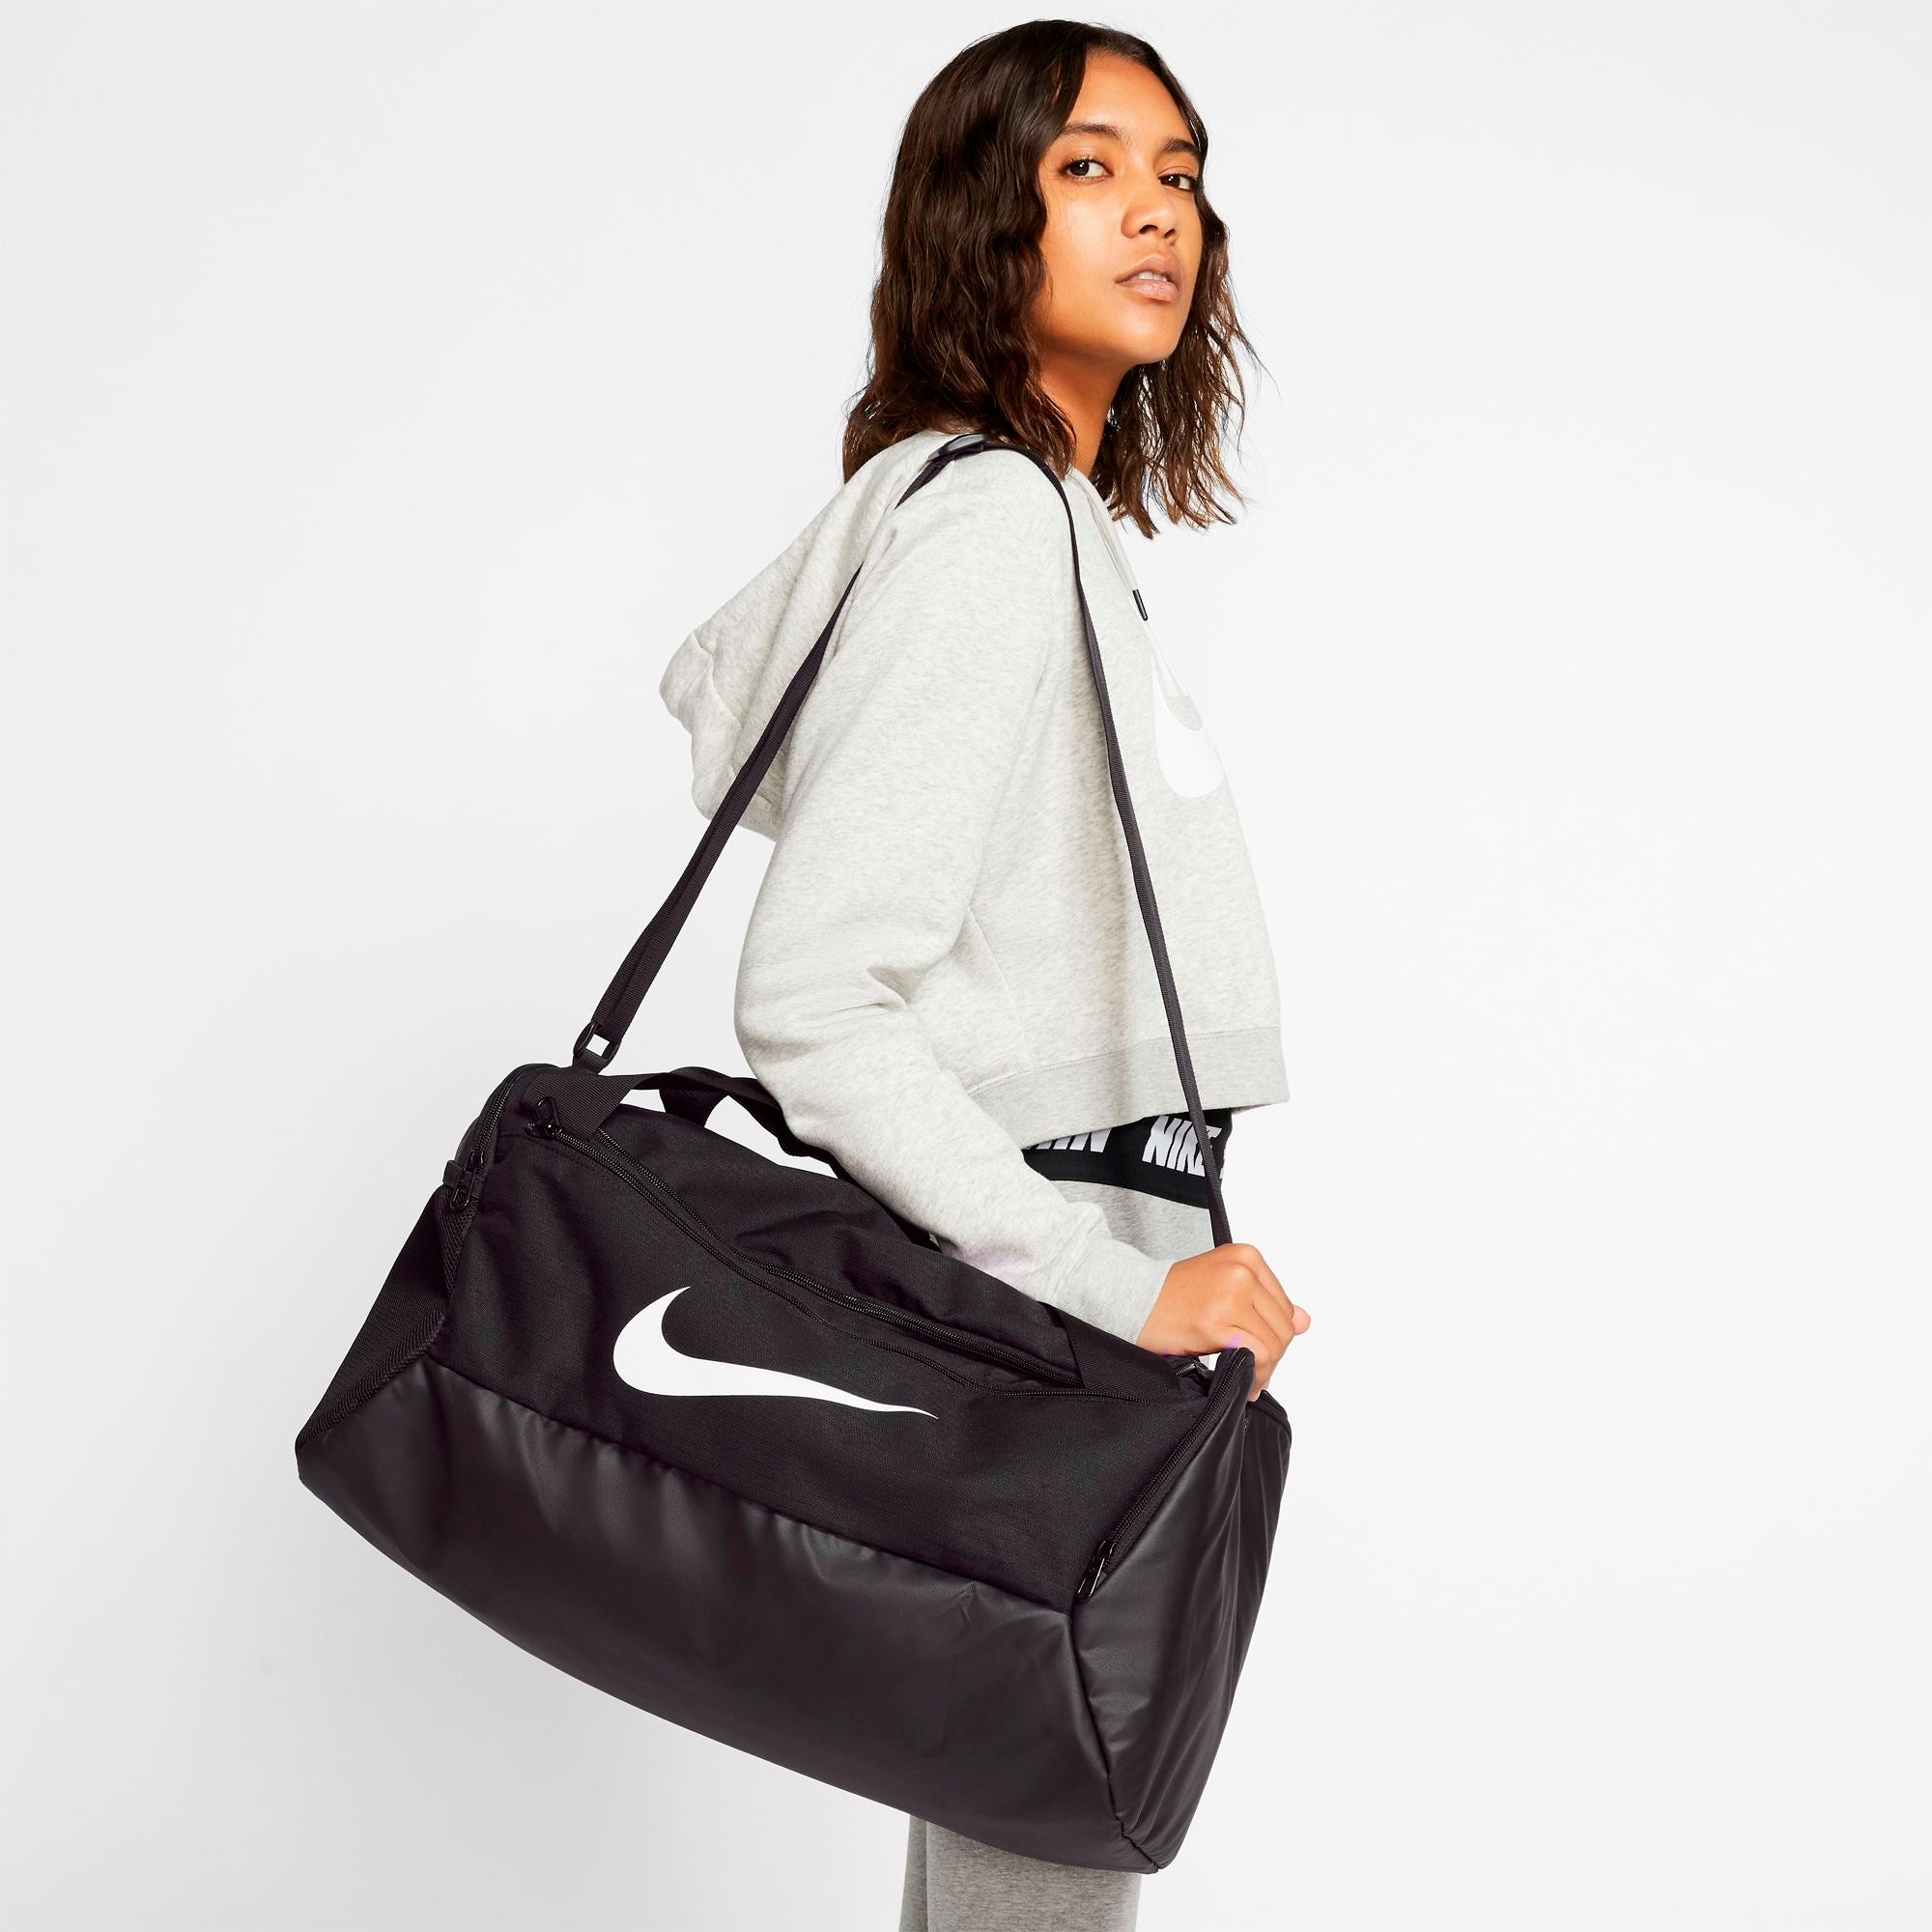 Nike Brasilia Duffle Bag (Small) - Black/Black/White SP-Accessories-Bags Nike